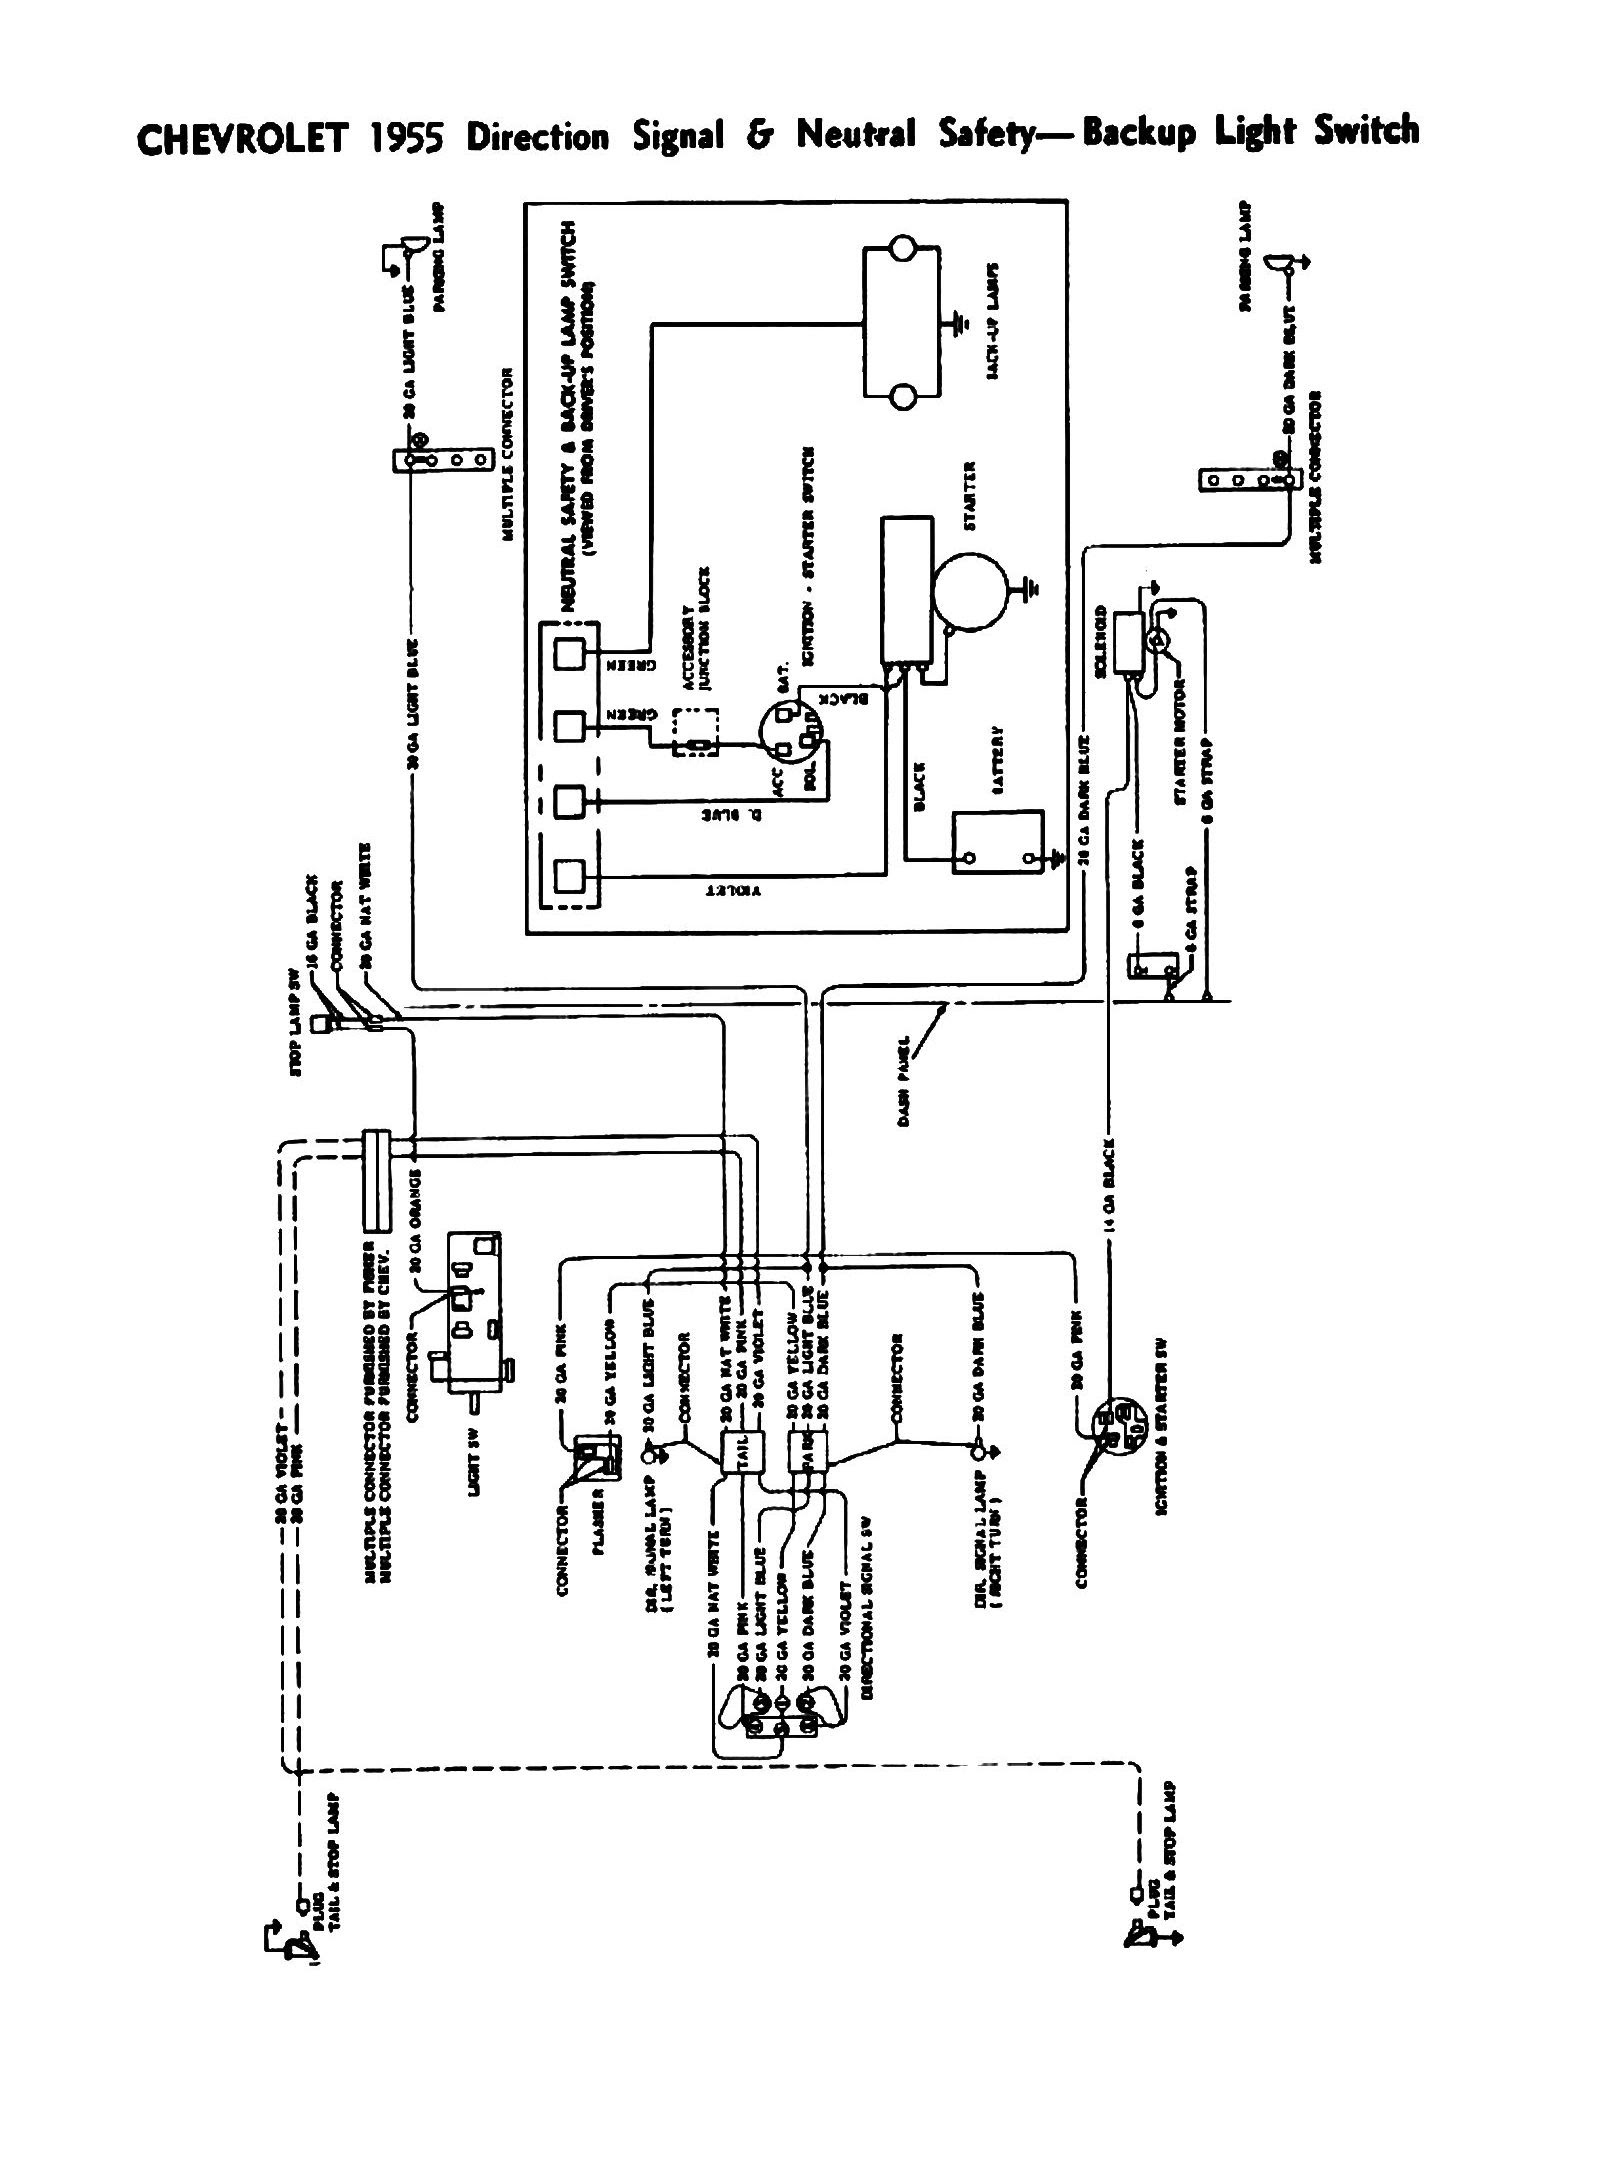 Chevy Ignition Wiring Diagram 1968 Chevy Camaro Fuel Gauge Wiring Diagram Bege Wiring Diagram